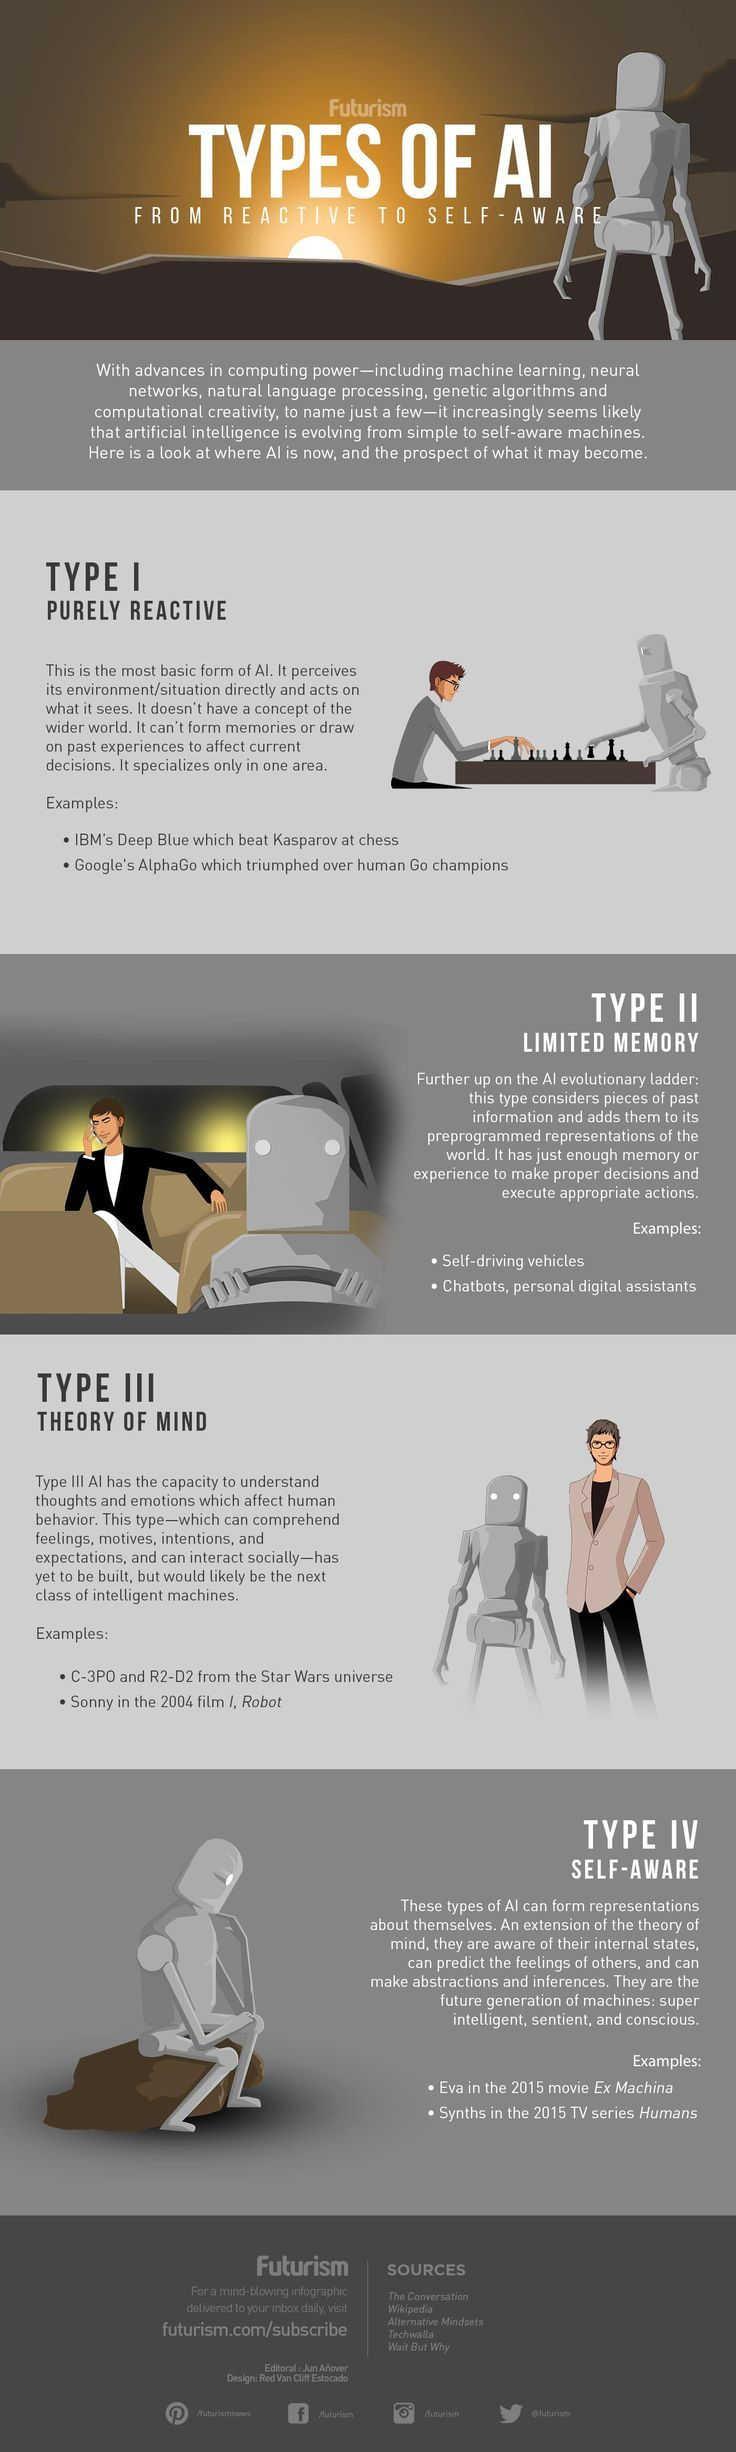 #VR #VRGames #Drone #Gaming Computing advances have fueled the evolution of AI. Here's a look at the 4 types of artificial intelligence. advances, AI, artificial, Computing, Evolution, fueled, game design, google cardboard, Hereamp39s, intelligence, types, virtual reality, vr 360, vr games, vr glasses, vr gloves, vr headset, vr infographic, VR Pics, vr real estate #Advances #AI #Artificial #Computing #Evolution #Fueled #Game-Design #Google-Cardboard #Hereamp39S #Int